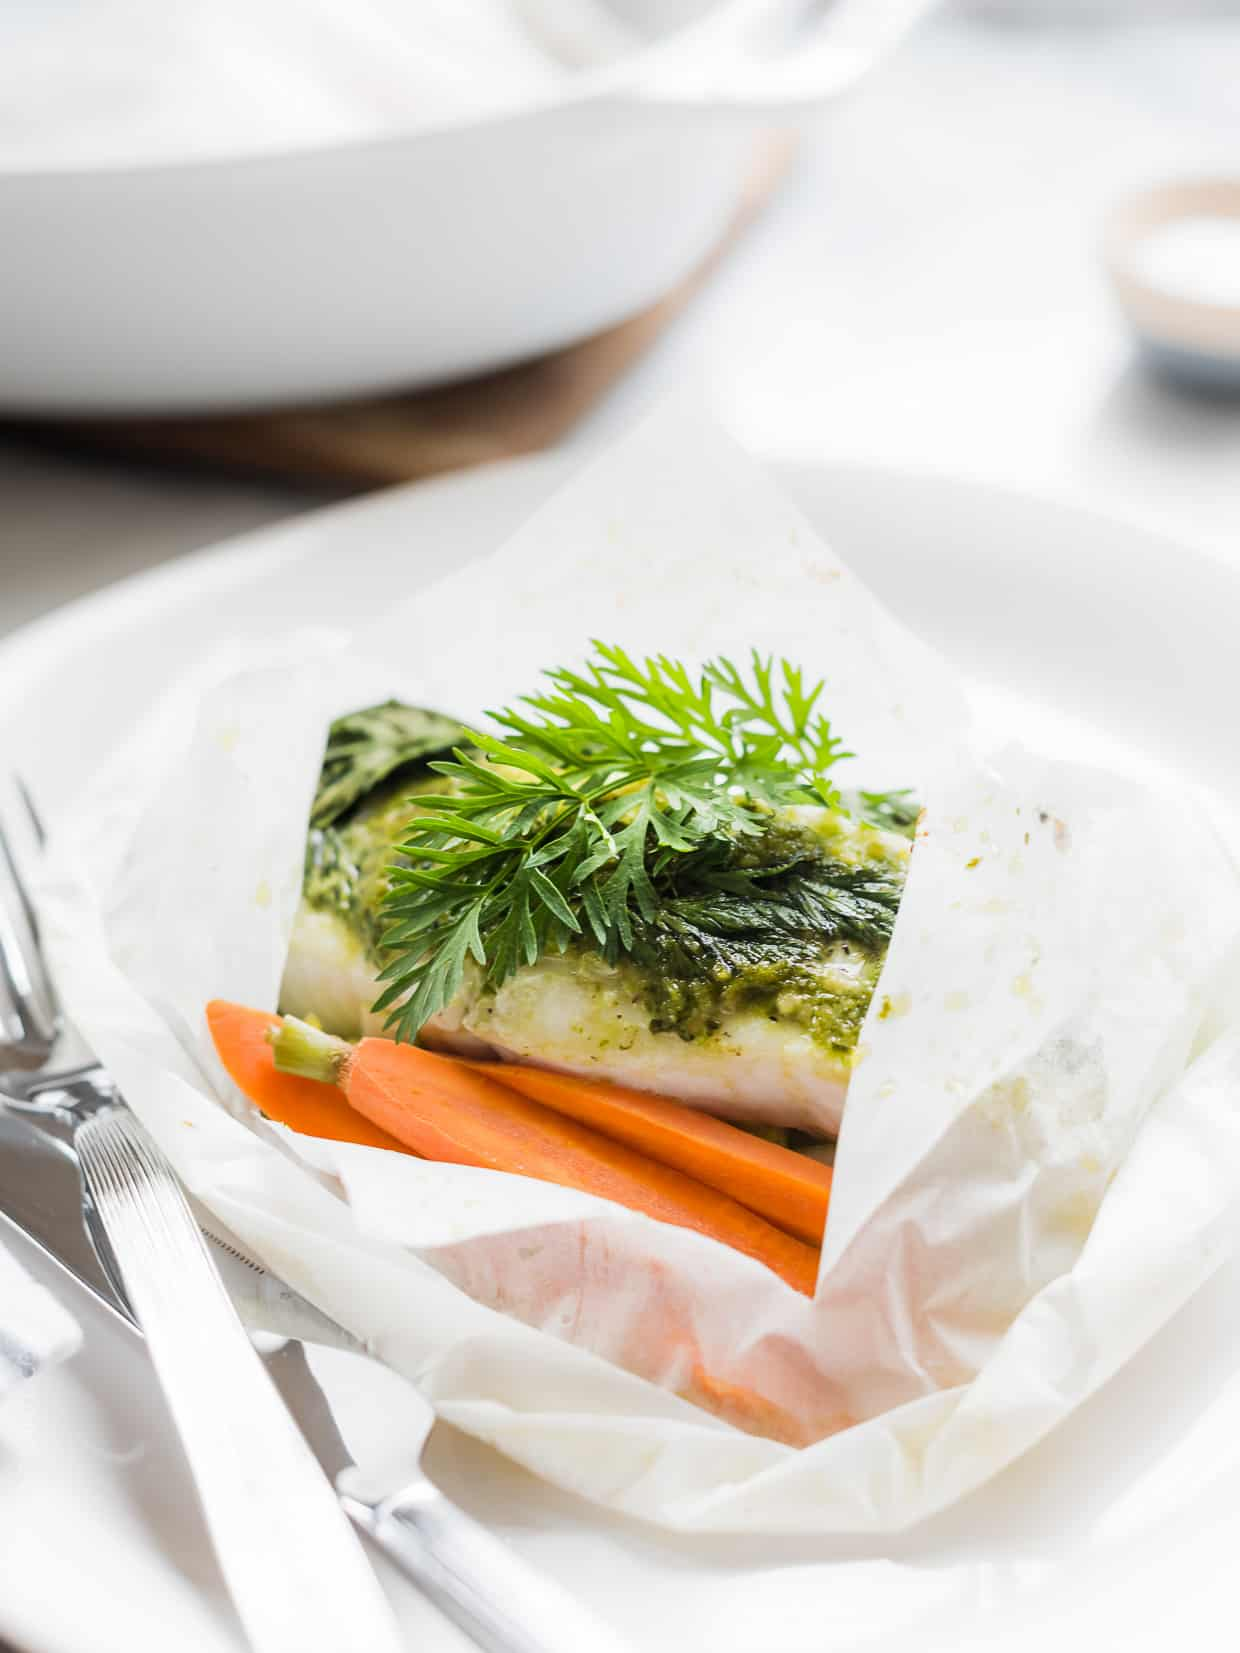 Don't toss those carrot tops! Use them in this deliciously simple Halibut en Papillote with Carrot Top Pesto!